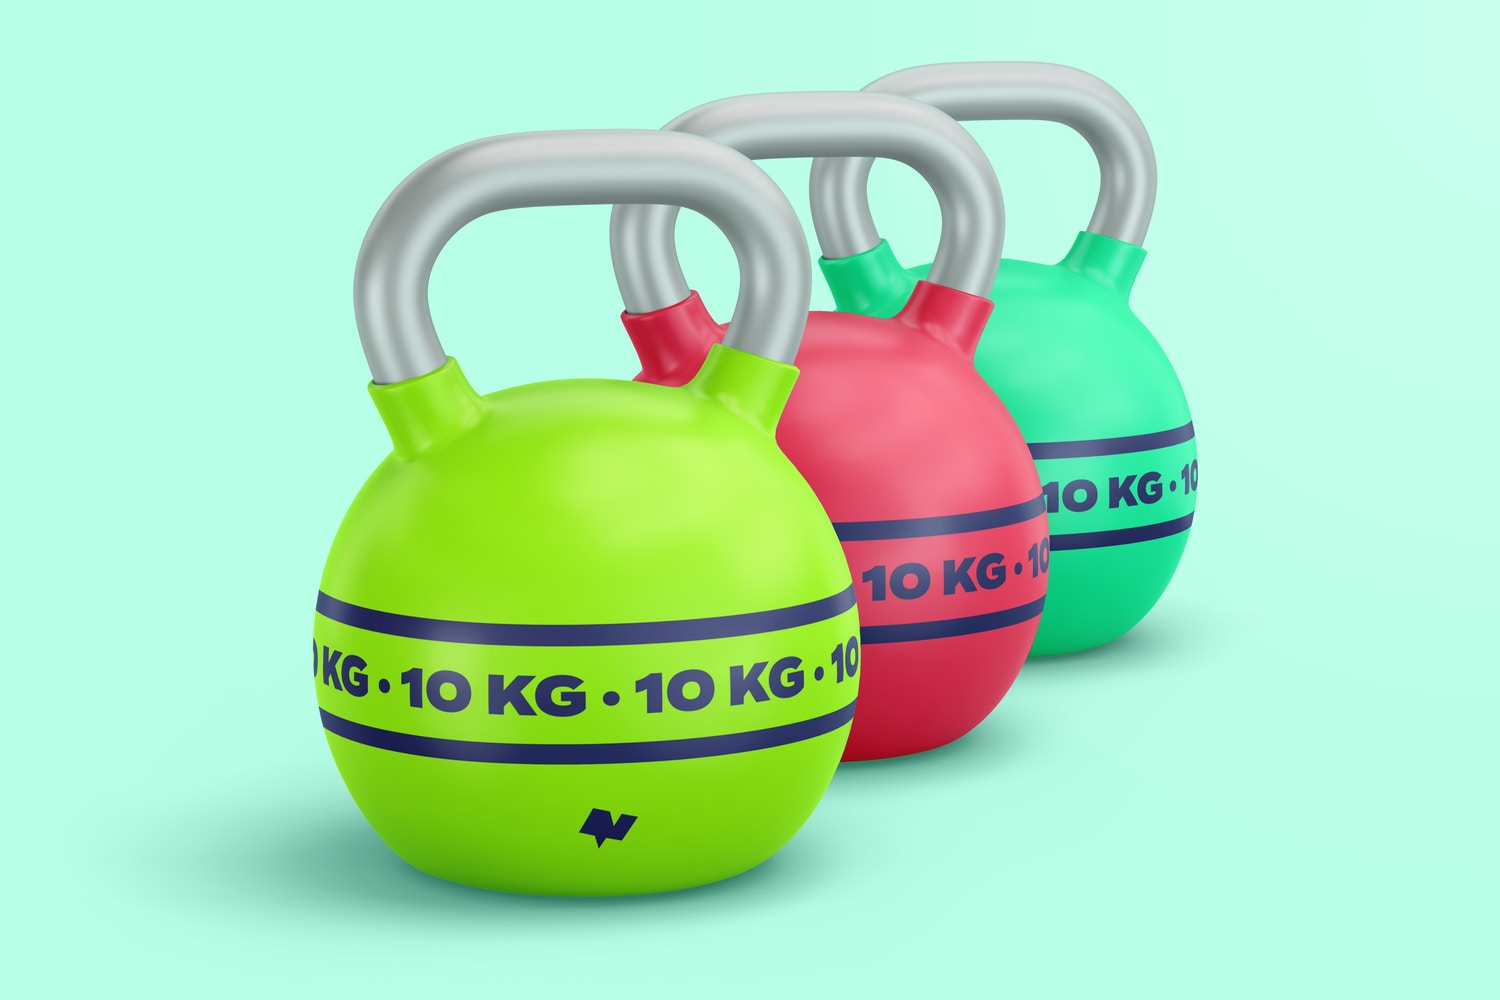 Take advantage of the lighting and let it help you by brightening the right angles. See how the grip area of the kettlebell shines.